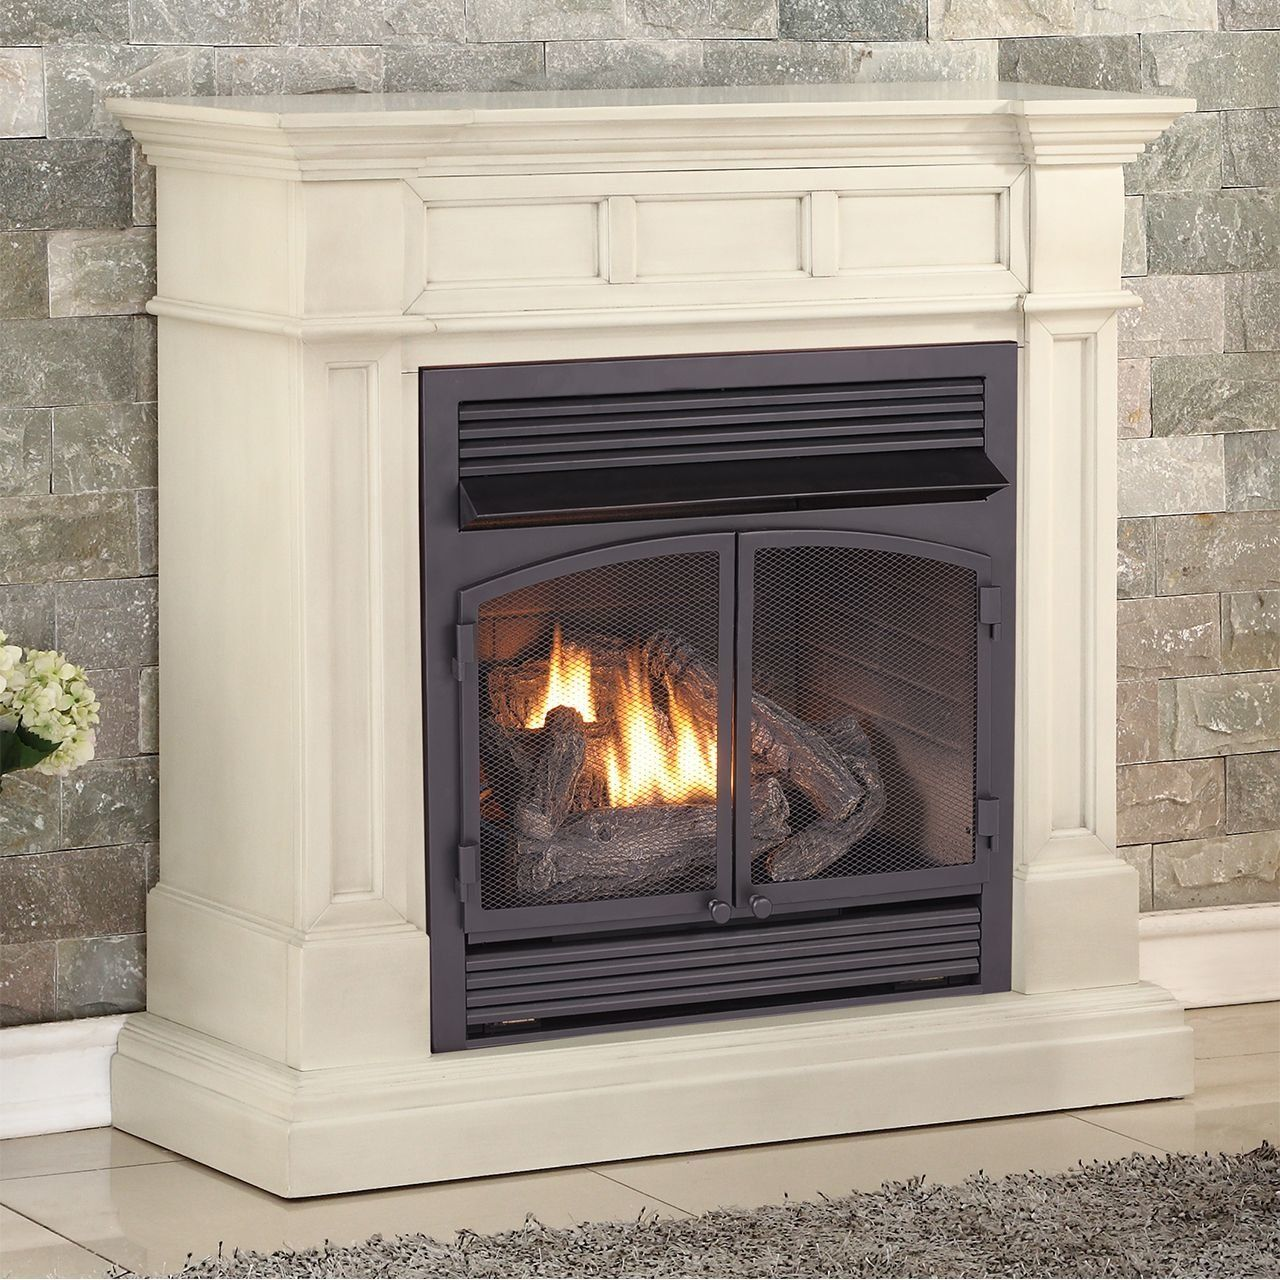 Vent Free Freestanding Natural Gas Propane Fireplace Vent Free